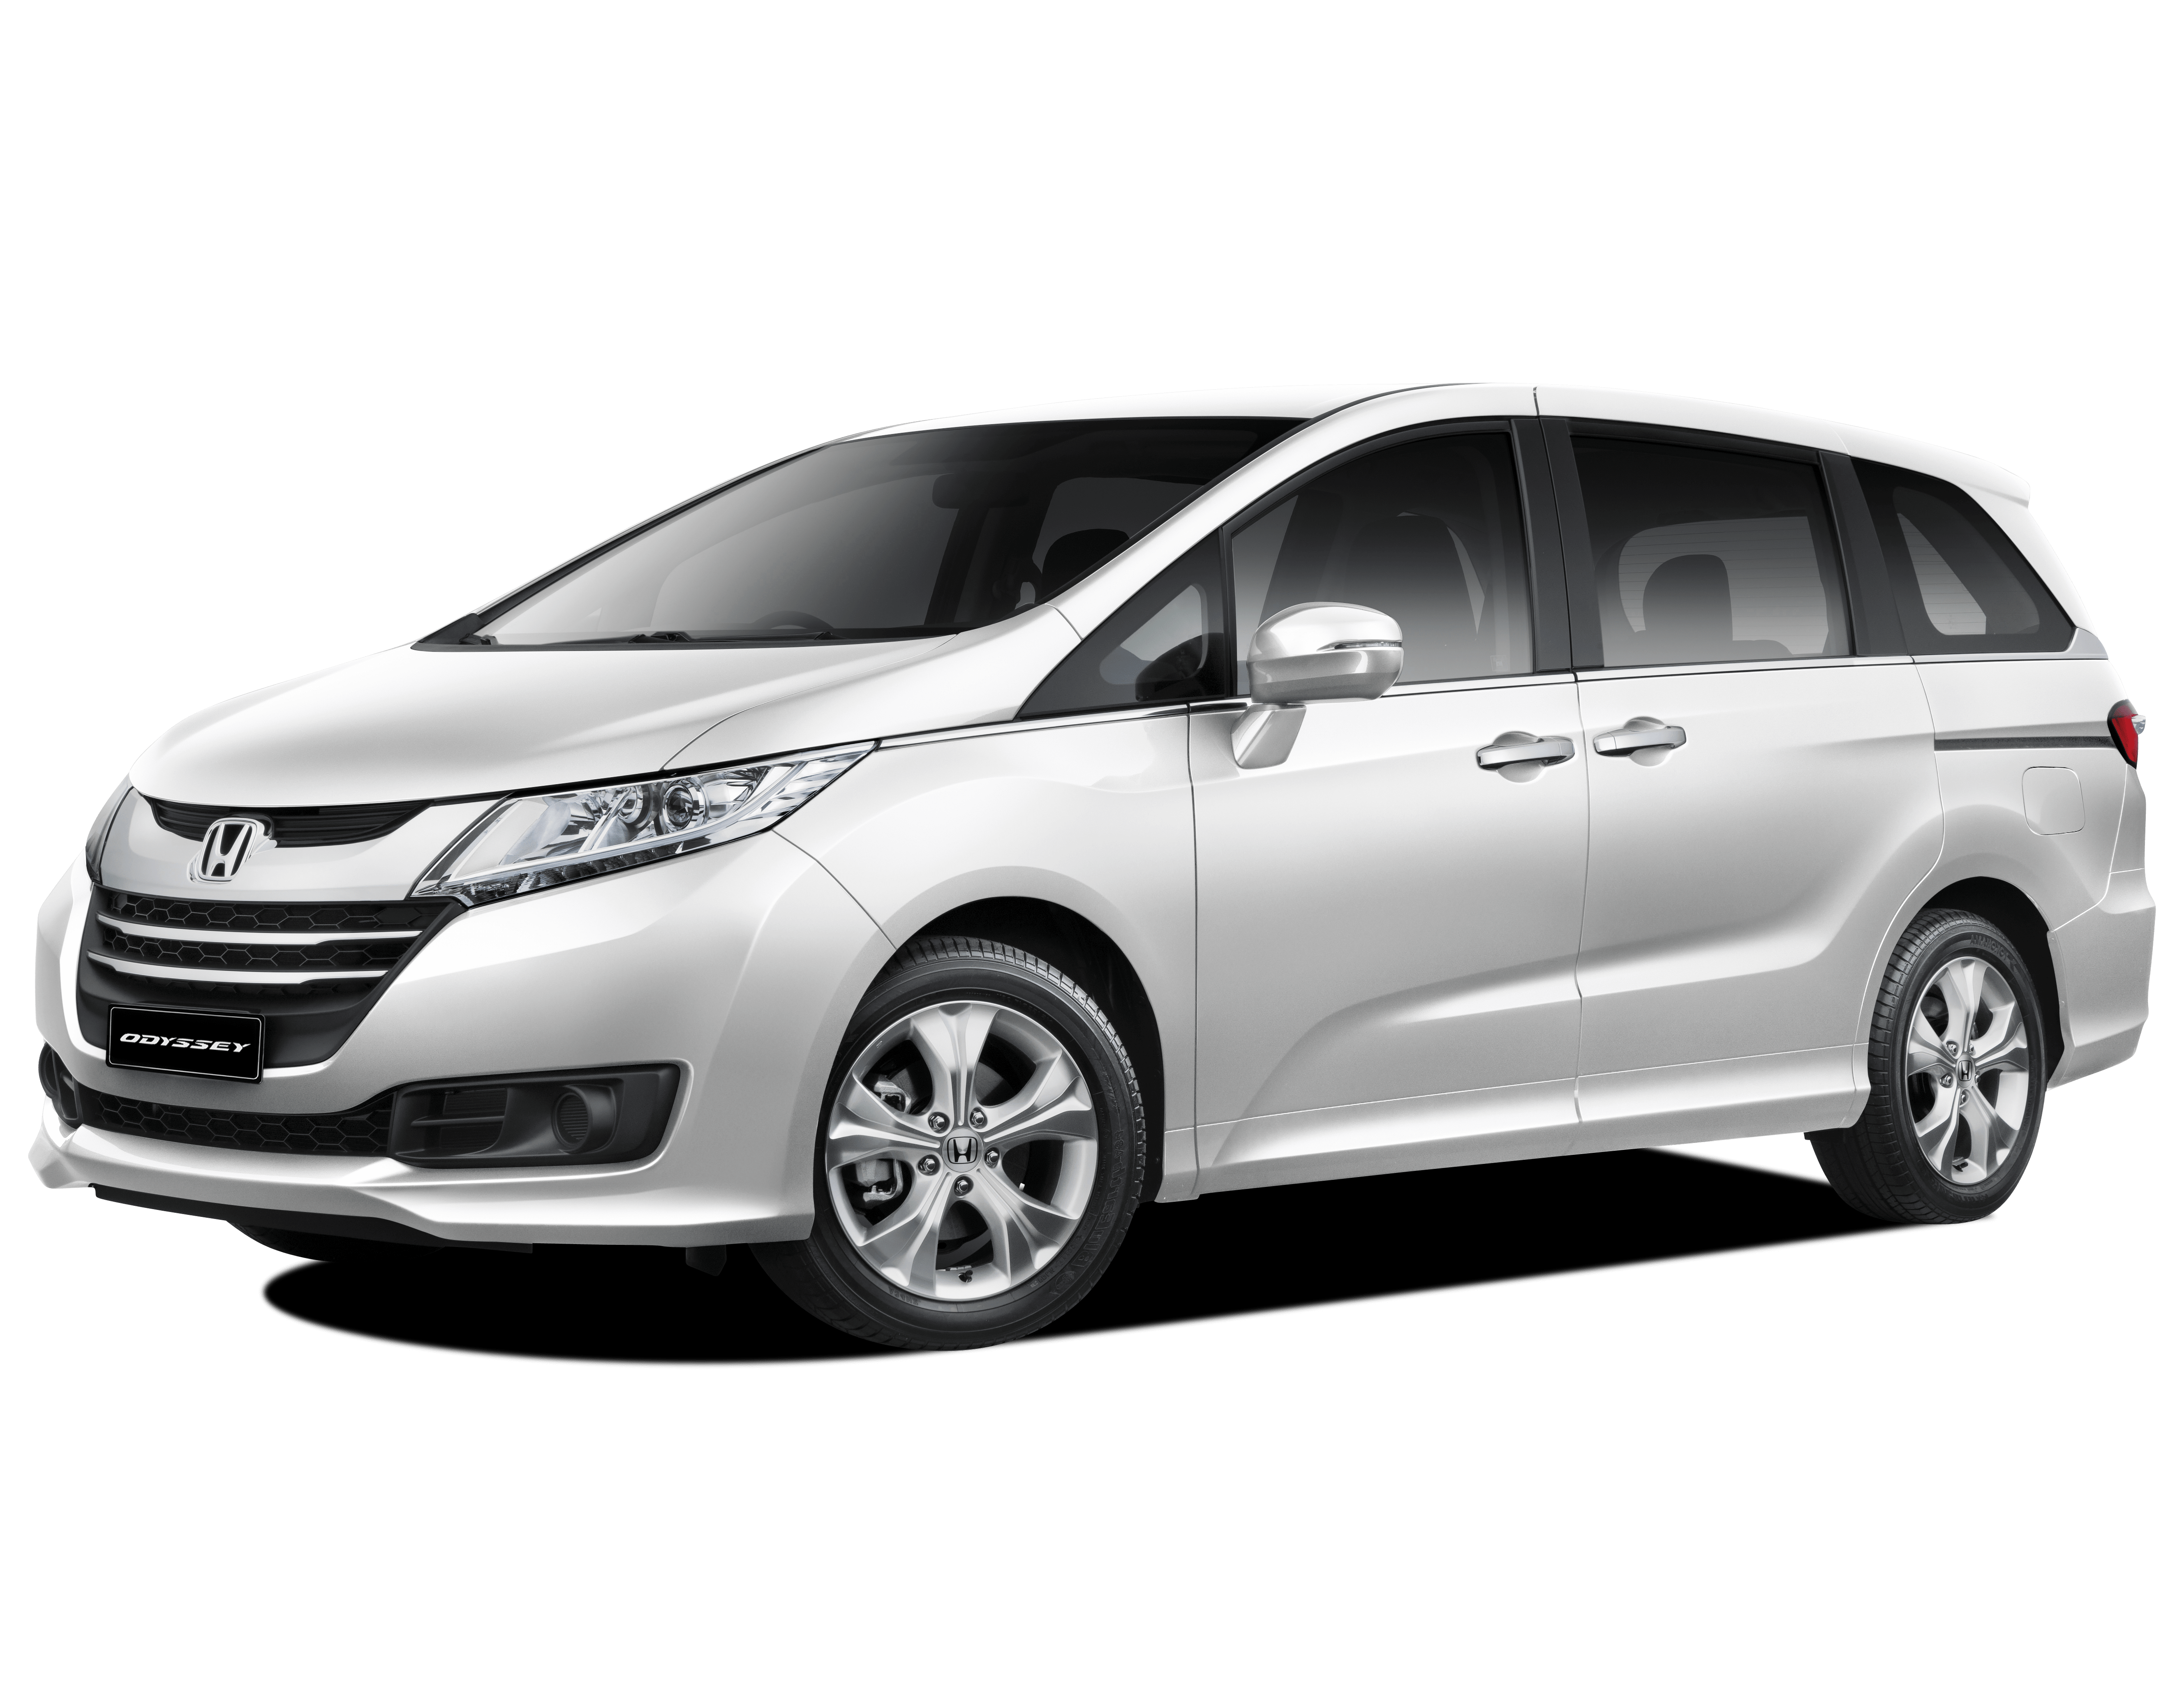 the chat car ndsrcwz available dba made model now odyssey honda in philippines forums version lhd japan